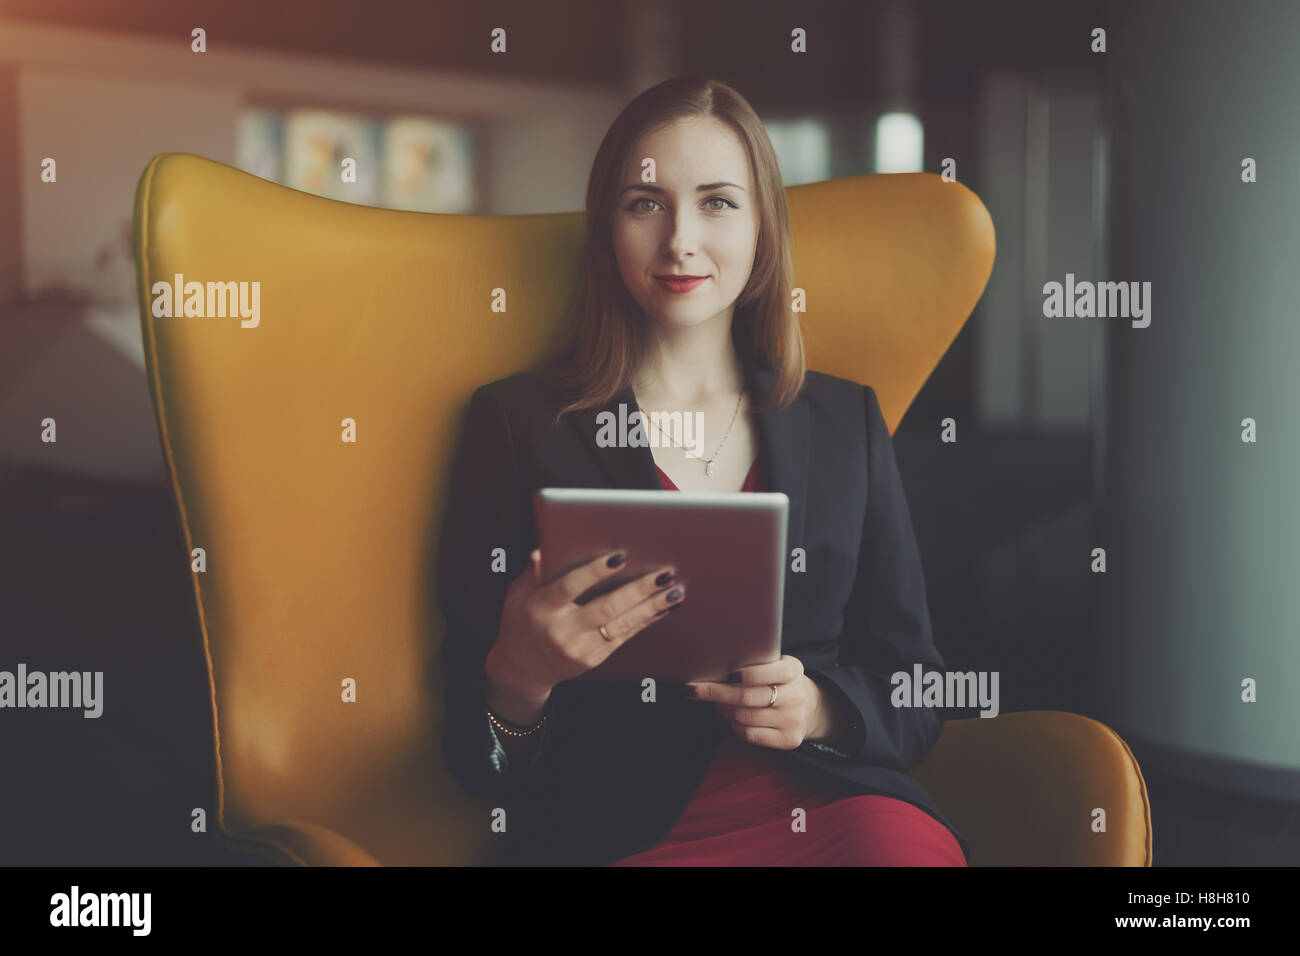 Portrait of young successful woman entrepreneur in a red dress and jacket sitting on orange armchair and working - Stock Image